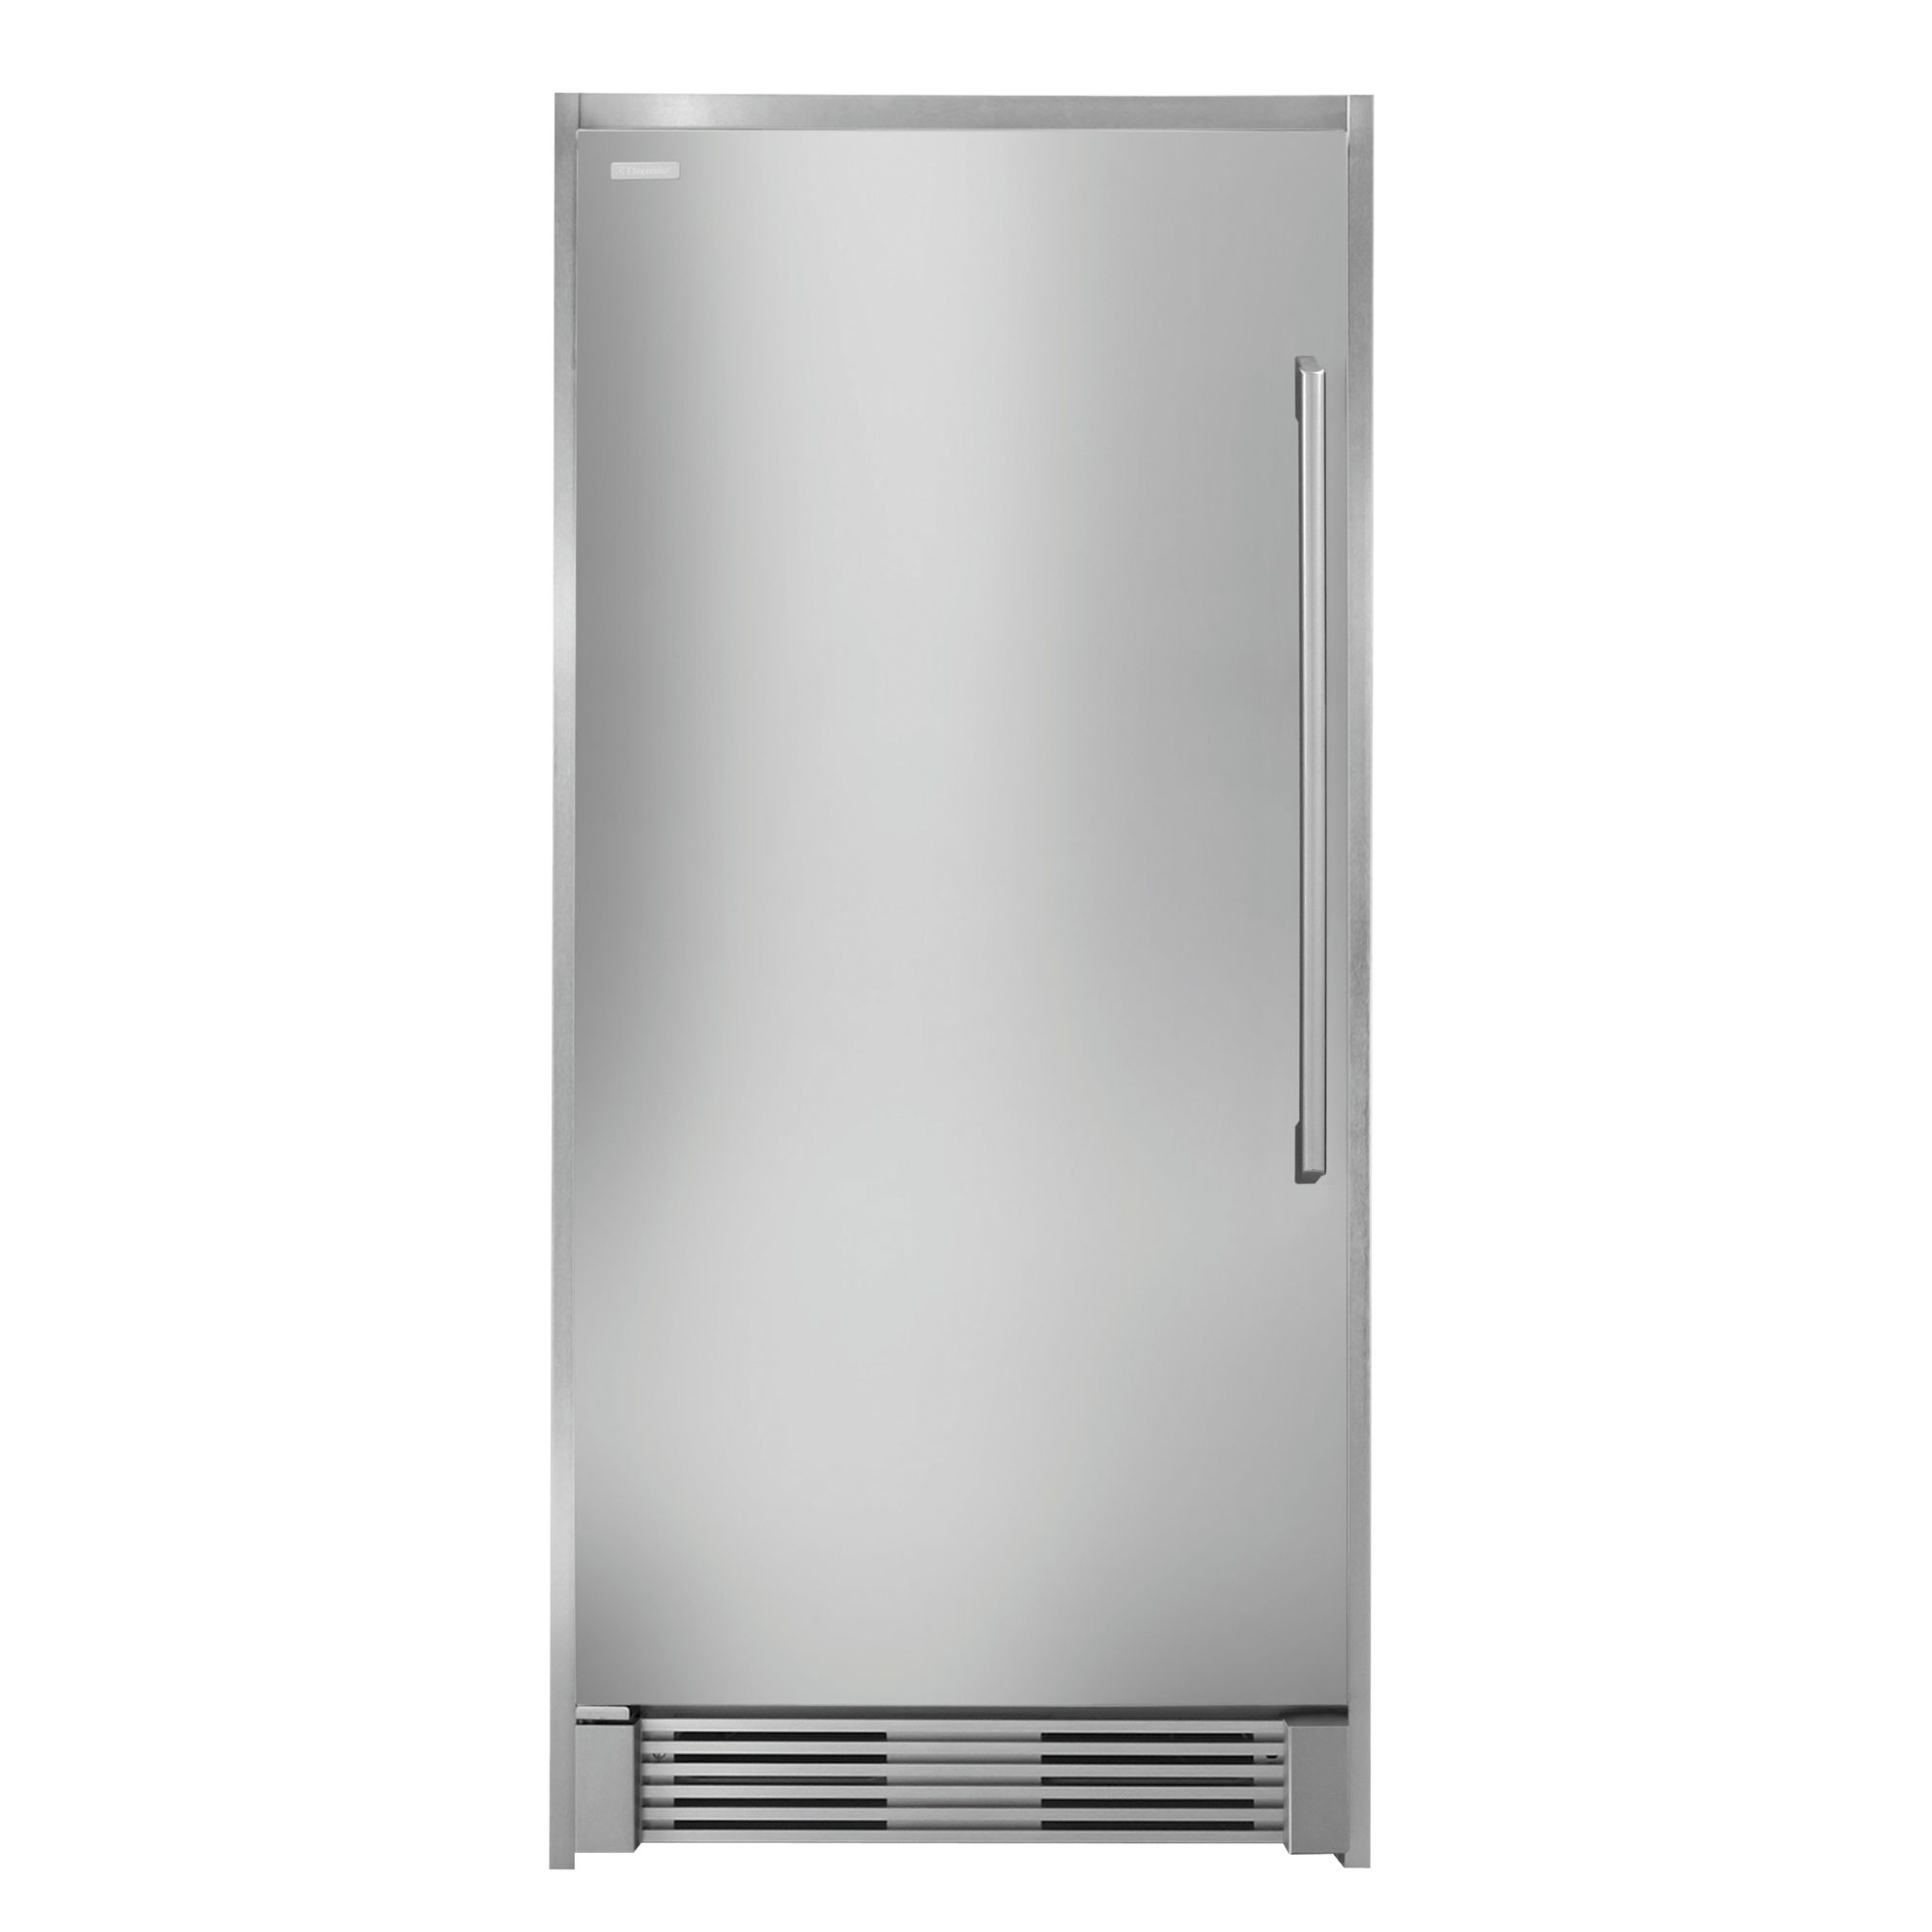 Electrolux 18.6 cu. ft. Built-In All Freezer - Stainless Steel